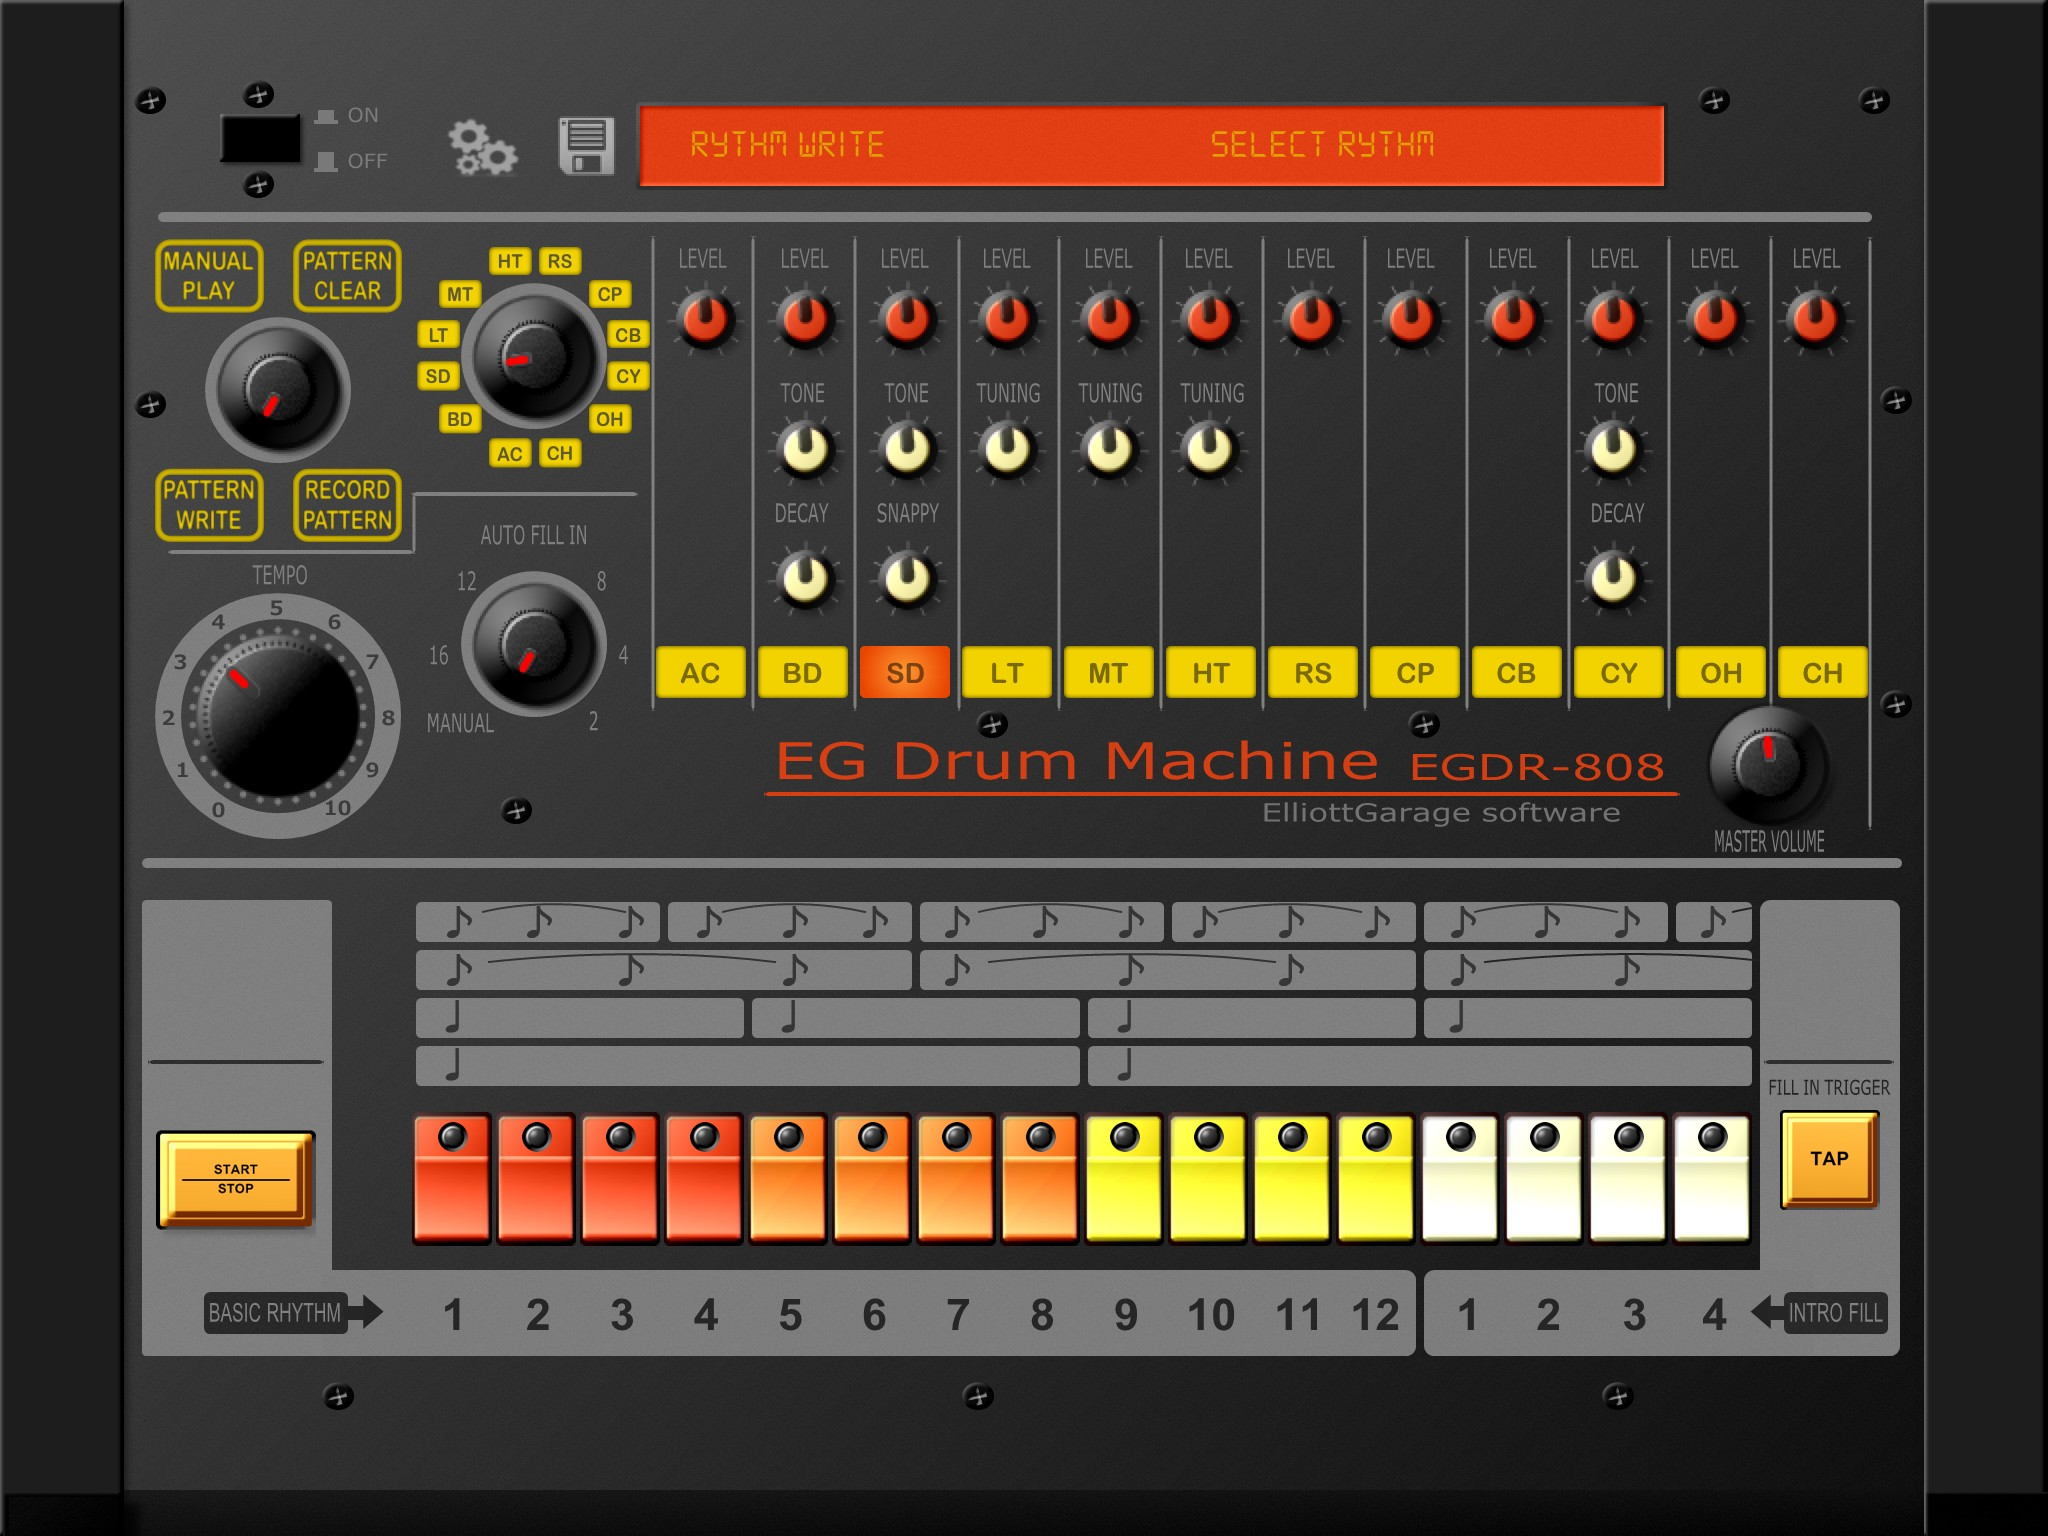 Red Devil Drum Machine Free Download : elliottgarage egdr808 drum machine app updated to v2 0 ~ Vivirlamusica.com Haus und Dekorationen